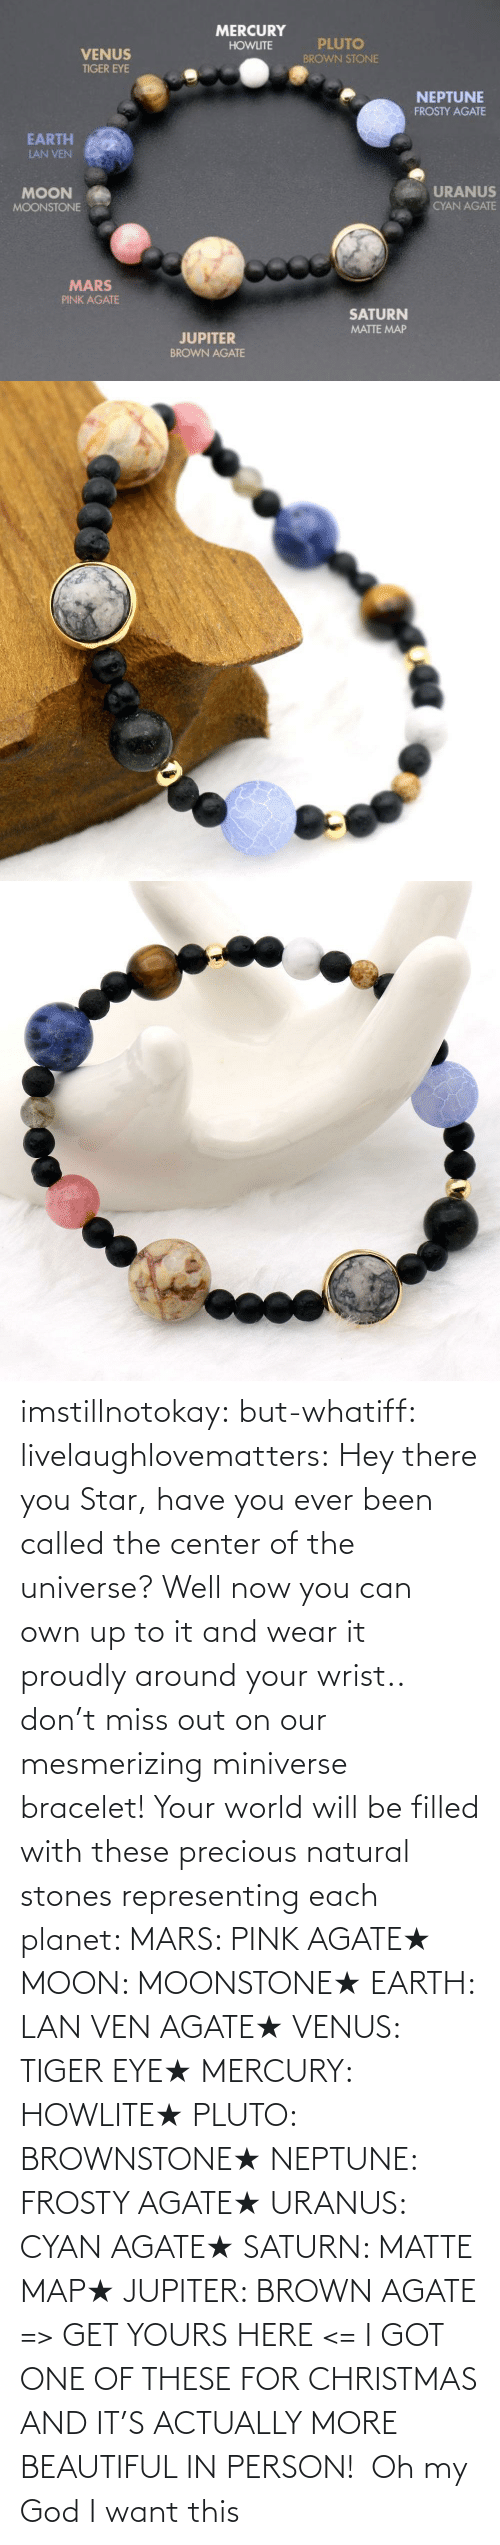 brown: imstillnotokay: but-whatiff:  livelaughlovematters:  Hey there you Star, have you ever been called the center of the universe? Well now you can own up to it and wear it proudly around your wrist.. don't miss out on our mesmerizing miniverse bracelet! Your world will be filled with these precious natural stones representing each planet:  MARS: PINK AGATE★ MOON: MOONSTONE★ EARTH: LAN VEN AGATE★ VENUS: TIGER EYE★ MERCURY: HOWLITE★ PLUTO: BROWNSTONE★ NEPTUNE: FROSTY AGATE★ URANUS: CYAN AGATE★ SATURN: MATTE MAP★ JUPITER: BROWN AGATE => GET YOURS HERE <=  I GOT ONE OF THESE FOR CHRISTMAS AND IT'S ACTUALLY MORE BEAUTIFUL IN PERSON!     Oh my God I want this